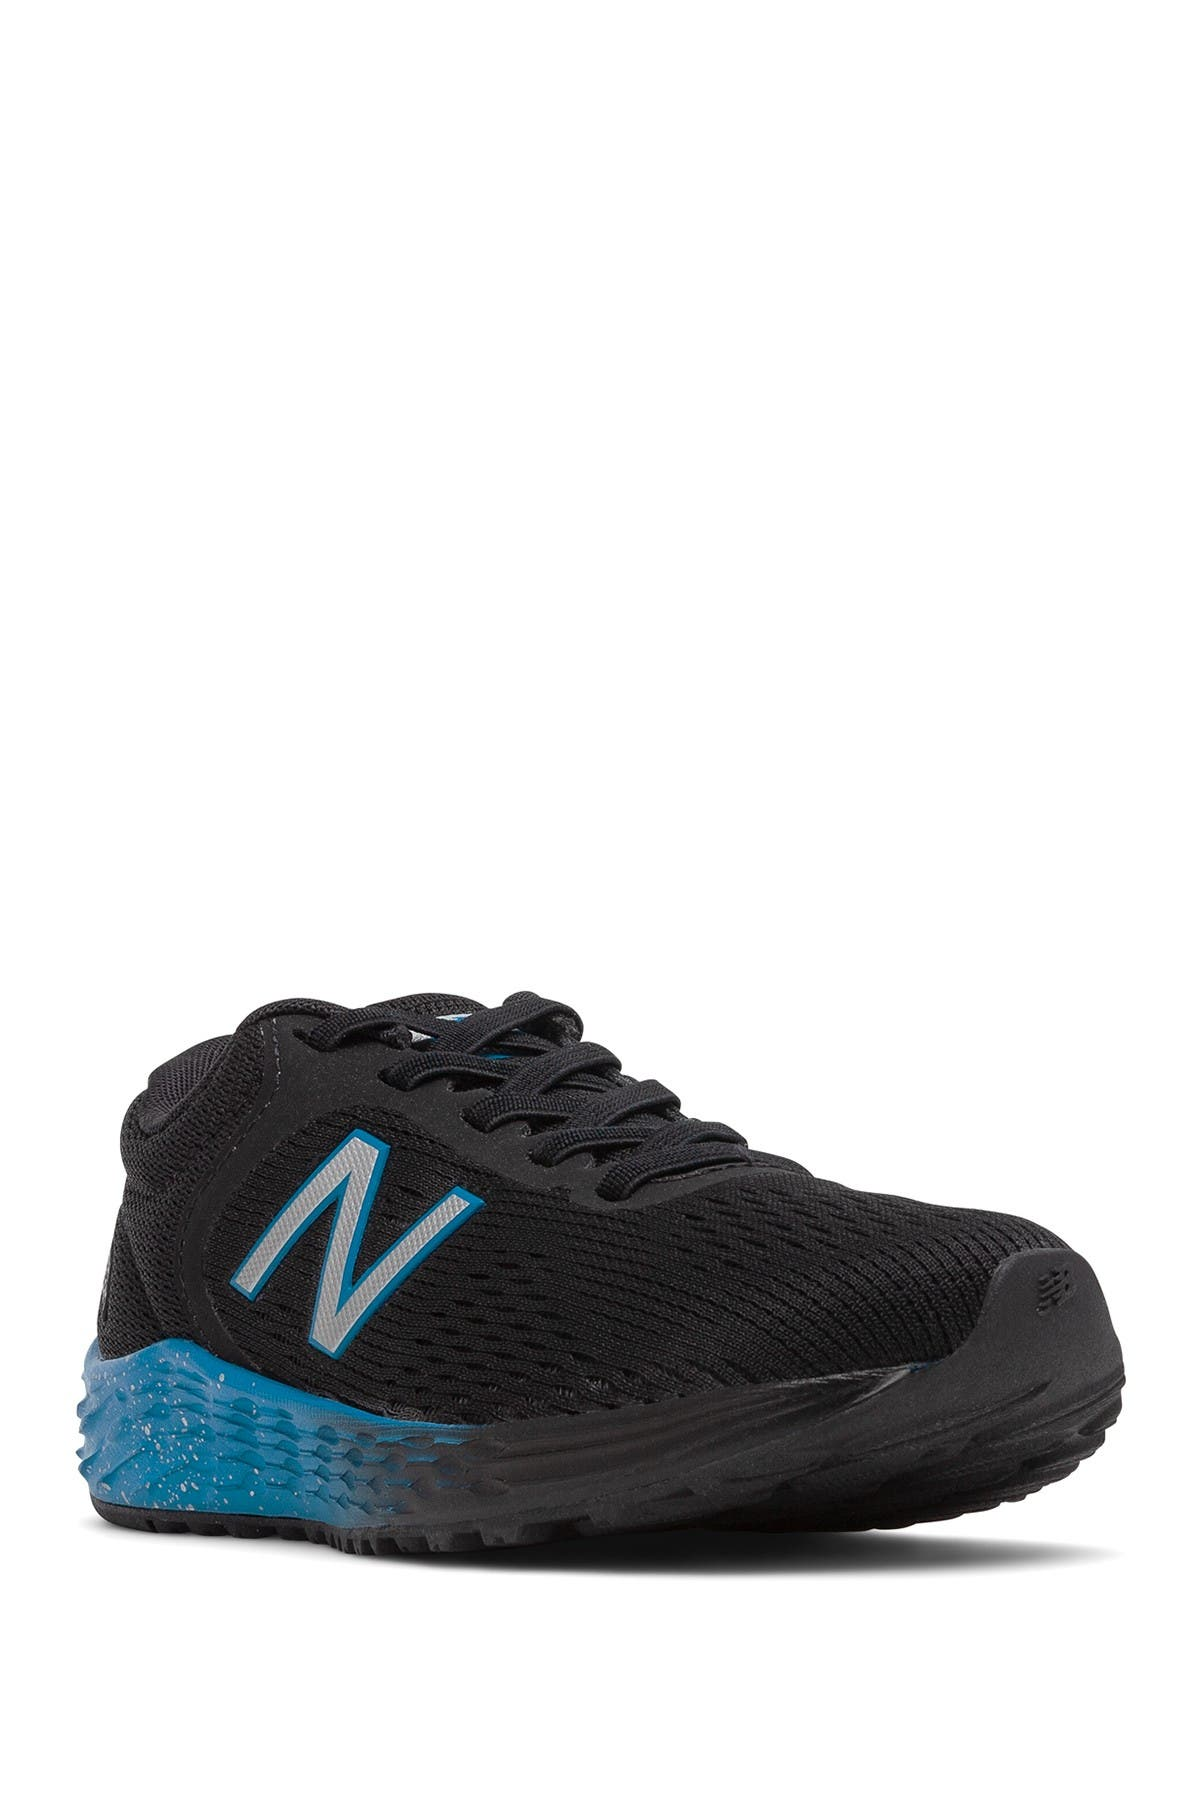 Image of New Balance Arishi Running Shoe